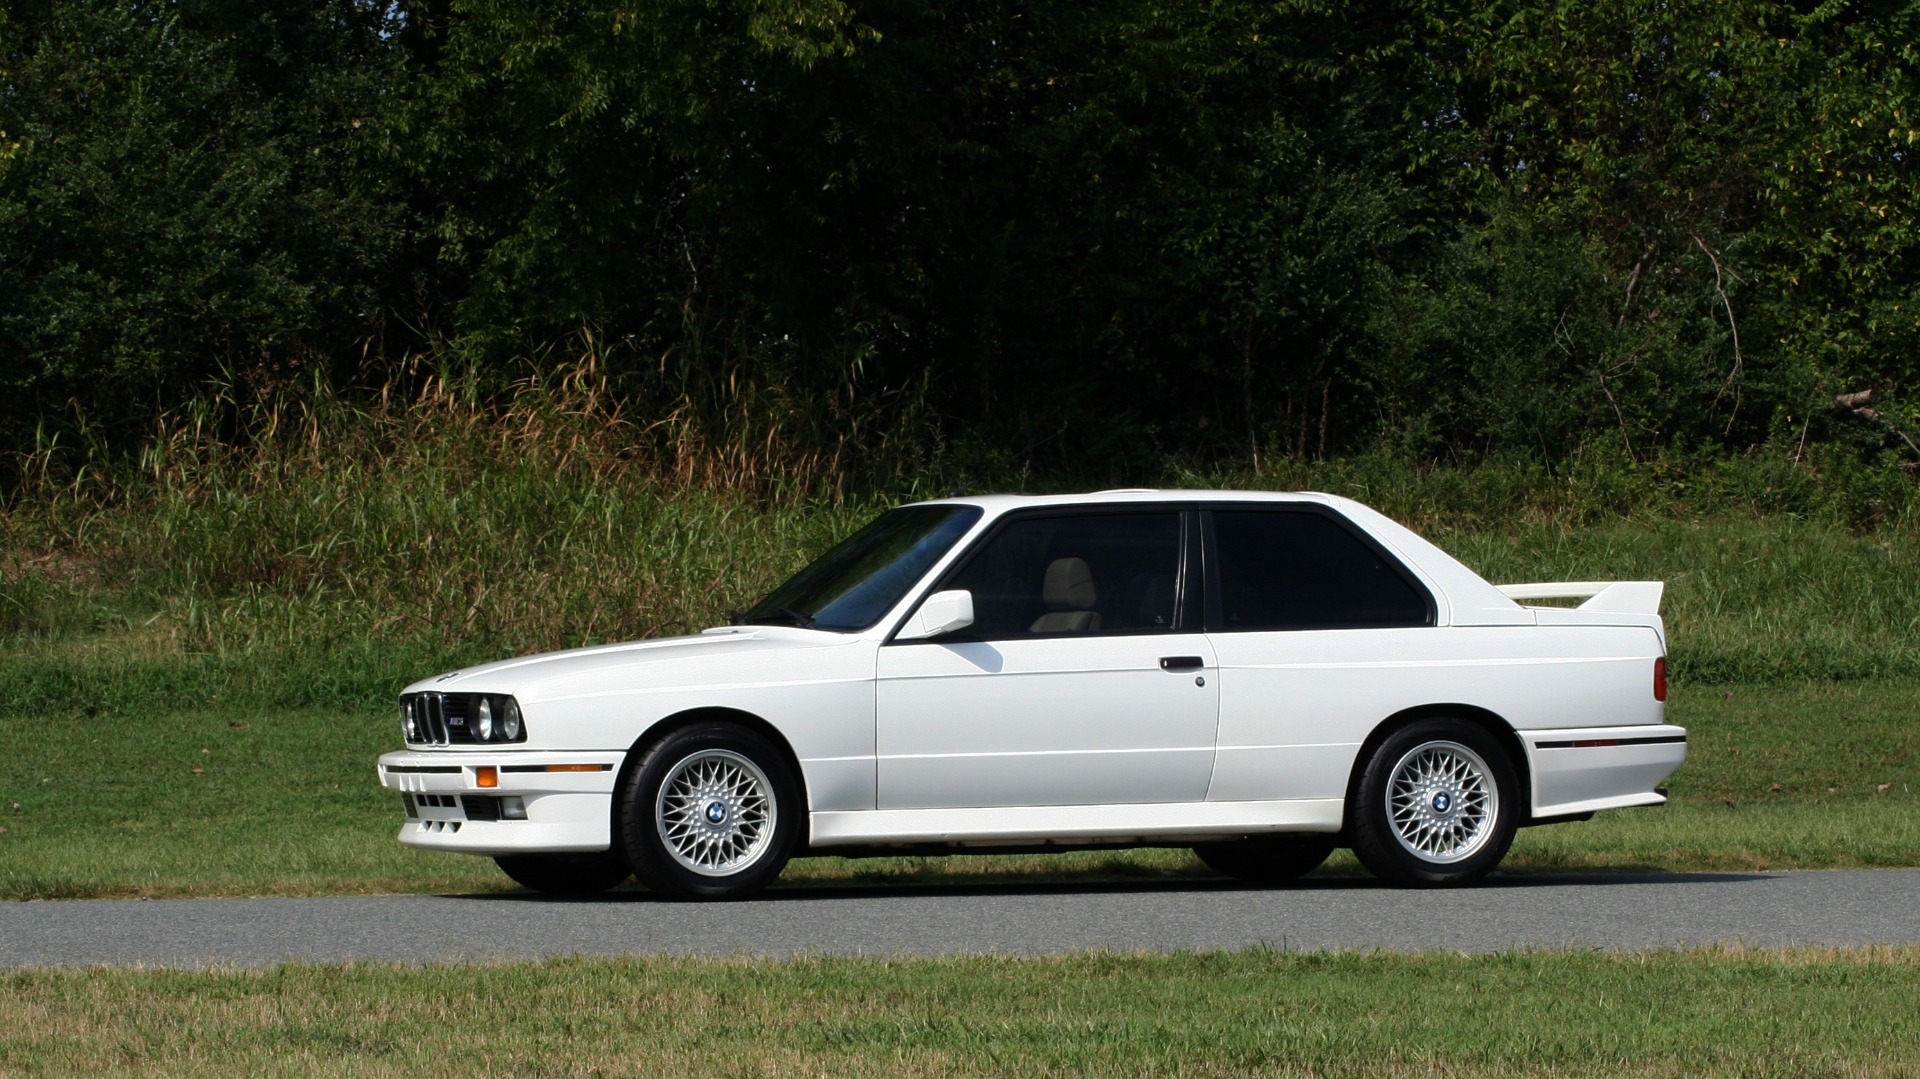 Used 1989 BMW M3 COUPE 2DR / 5-SPEED MAN / LOW MILES / SUPER CLEAN for sale Sold at Formula Imports in Charlotte NC 28227 2